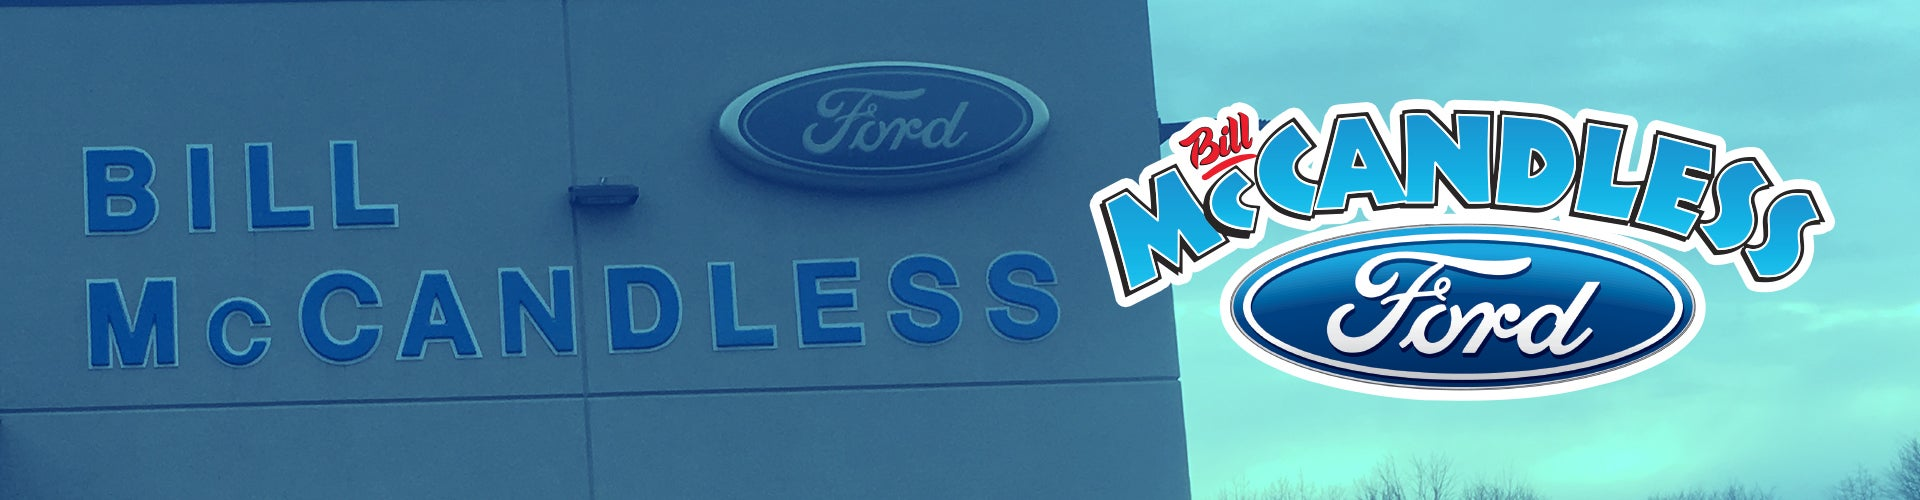 about us bill mccandless ford my local ford dealership about us bill mccandless ford my